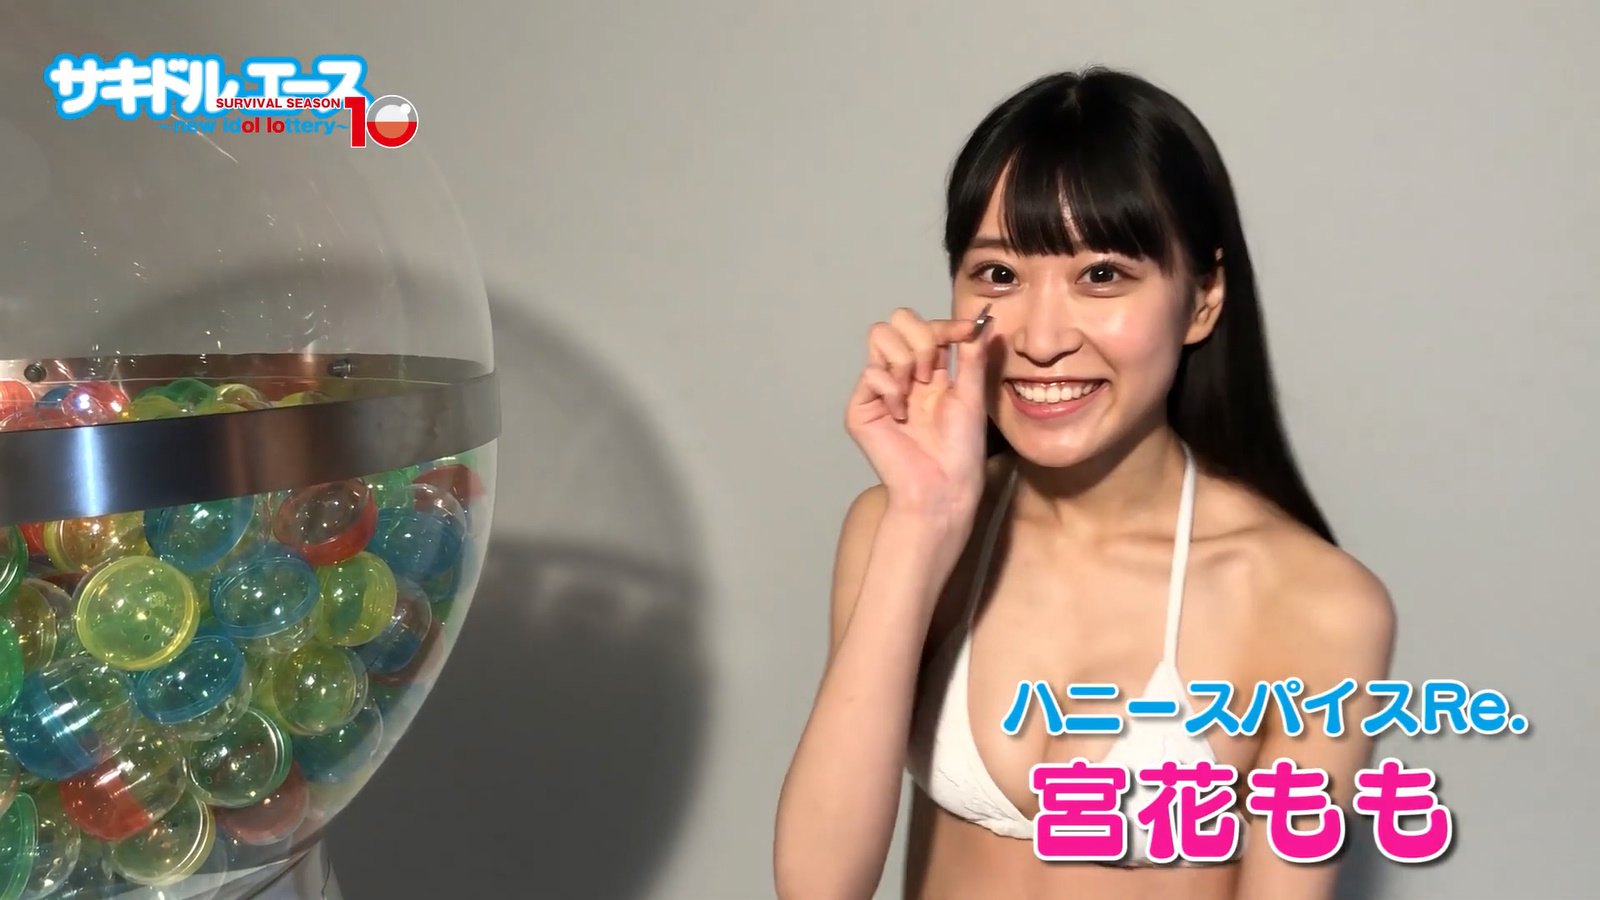 Sakidol Ace 10 Introduction Movie Capture of Swimsuit017